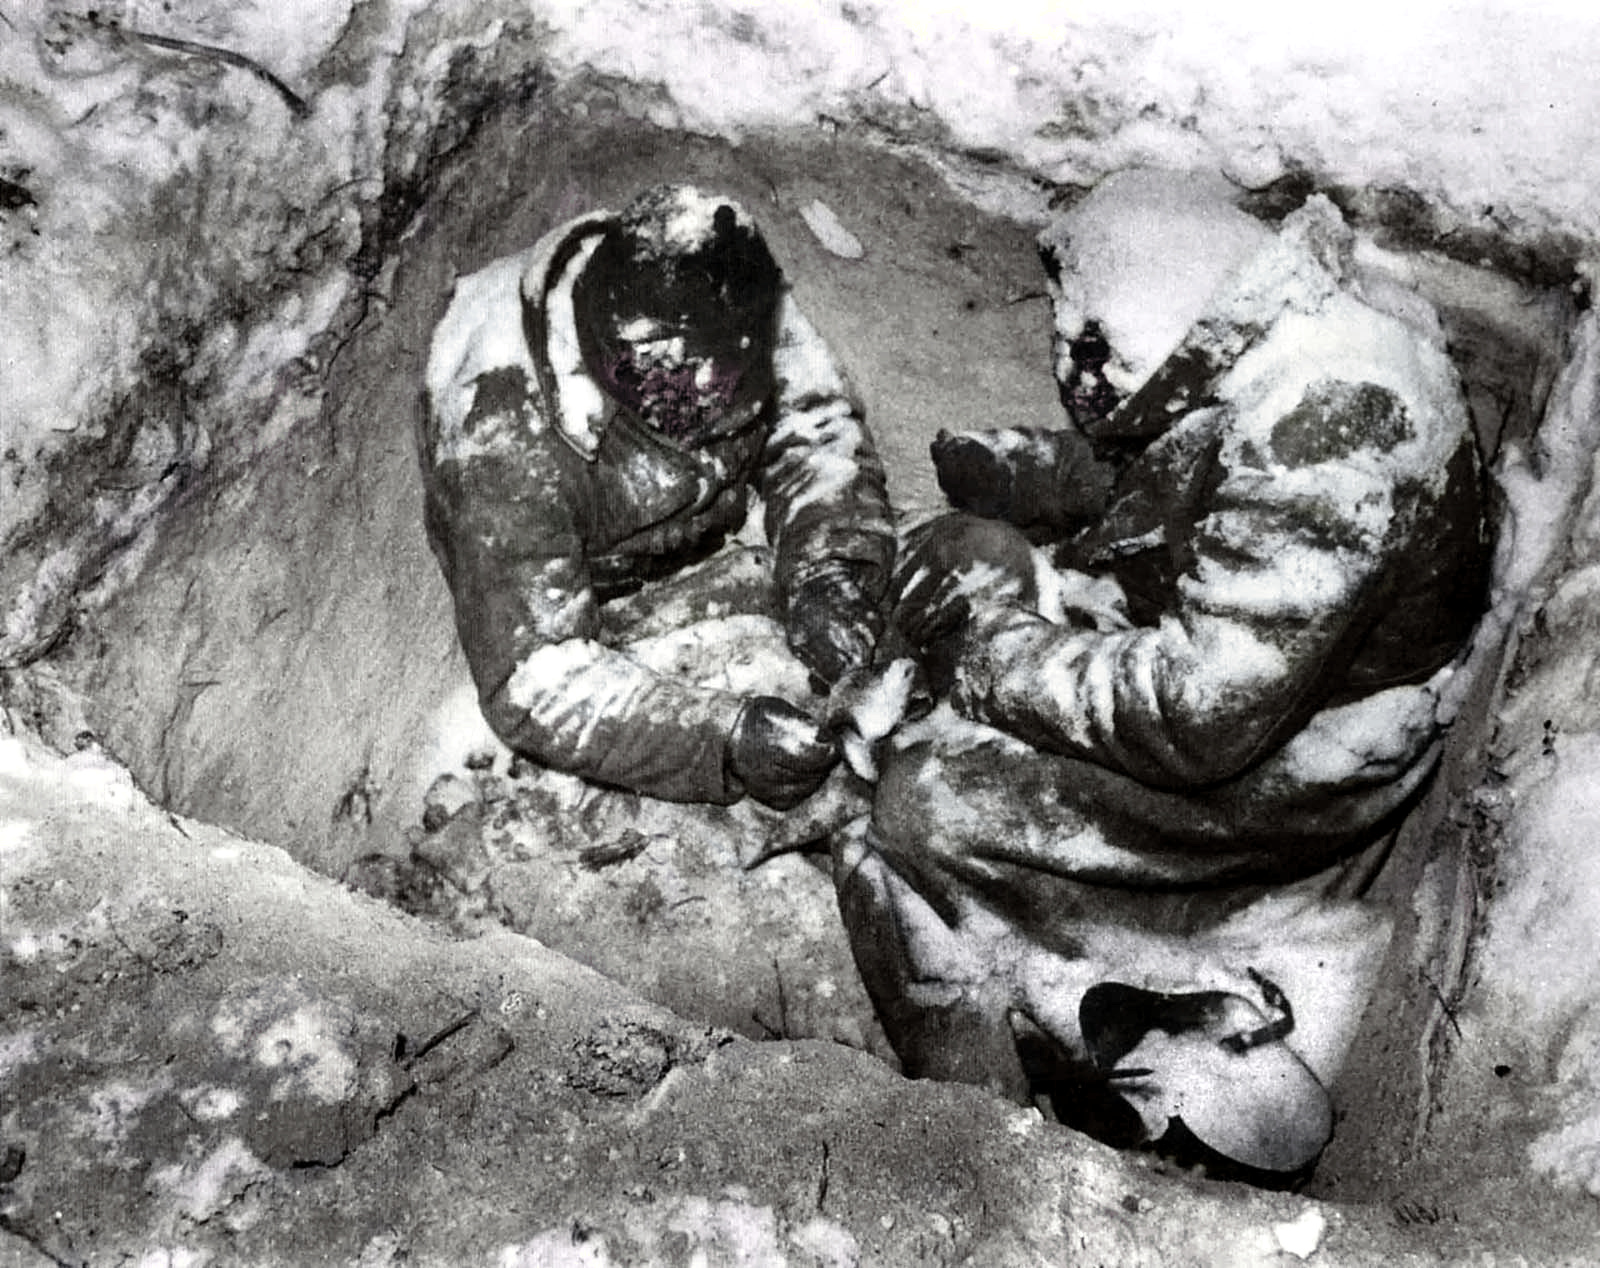 Two-Soviet-infantrymen-who-froze-to-death-in-their-fox-hole%2C-Finland%2C-1940